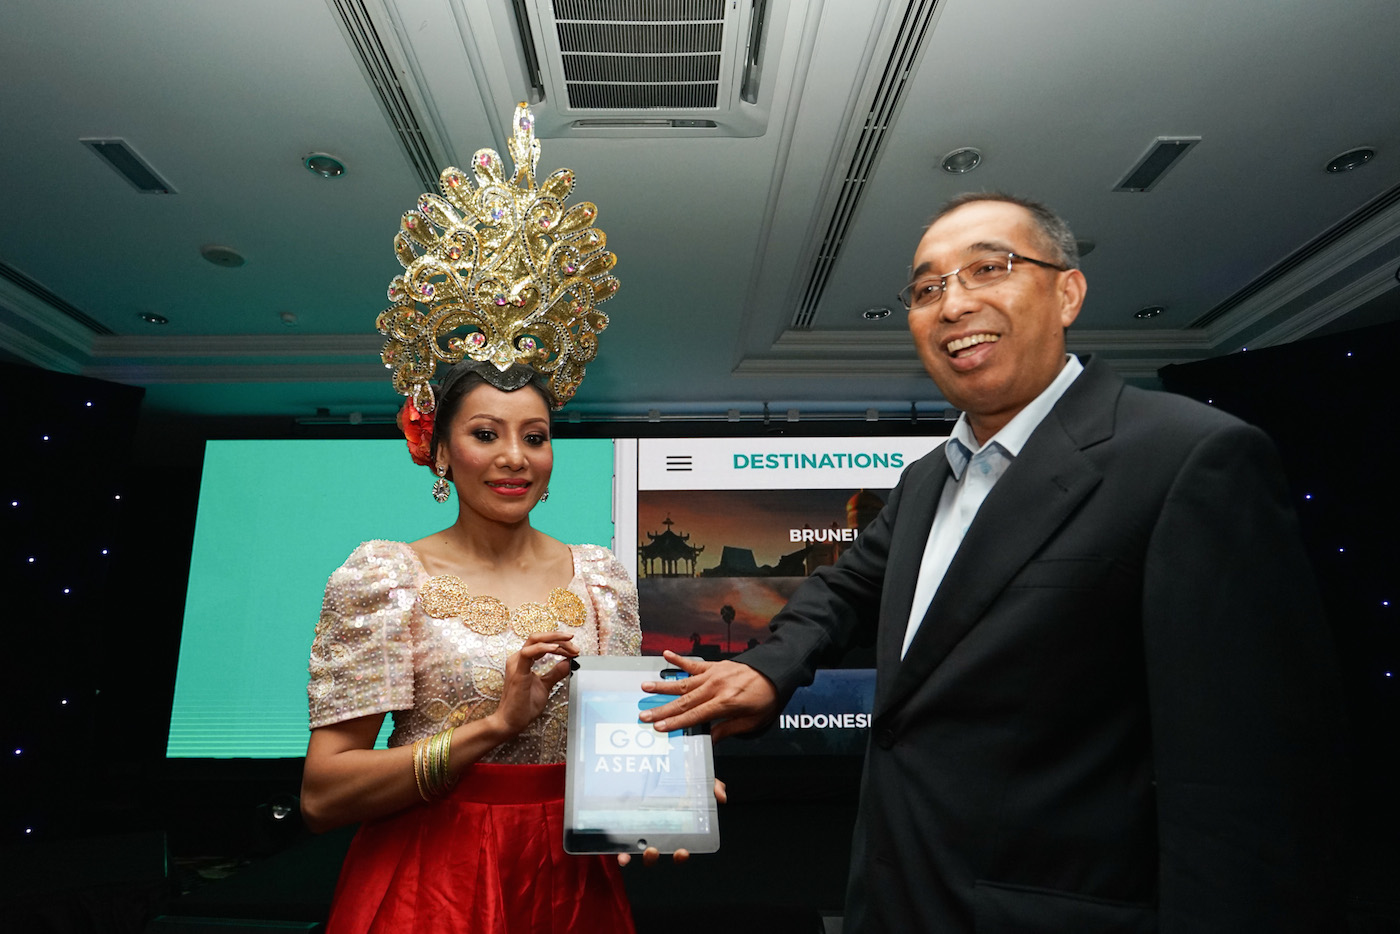 GOASEAN Mobile App and LetsGoNow Booking System Launched by YB Datuk Seri Panglima Salleh Said Keruak, Minister of Communication and Multimedia